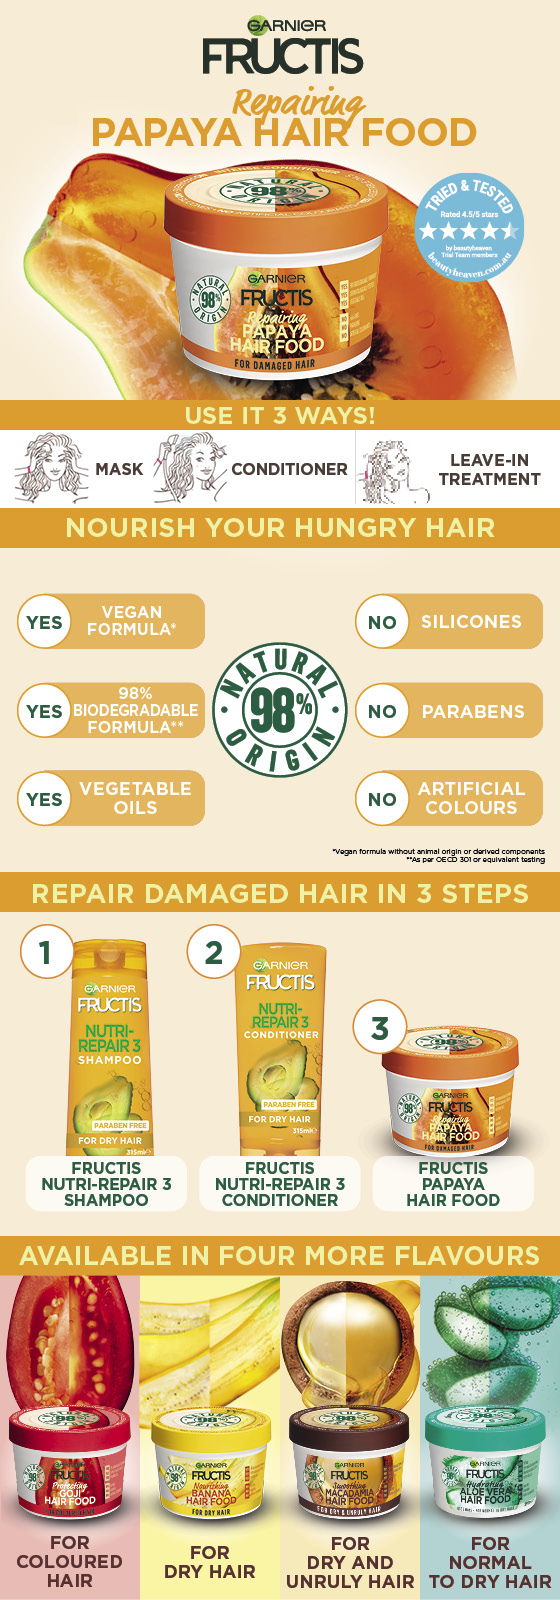 Garnier Fructis Hair Food Repairing Papaya